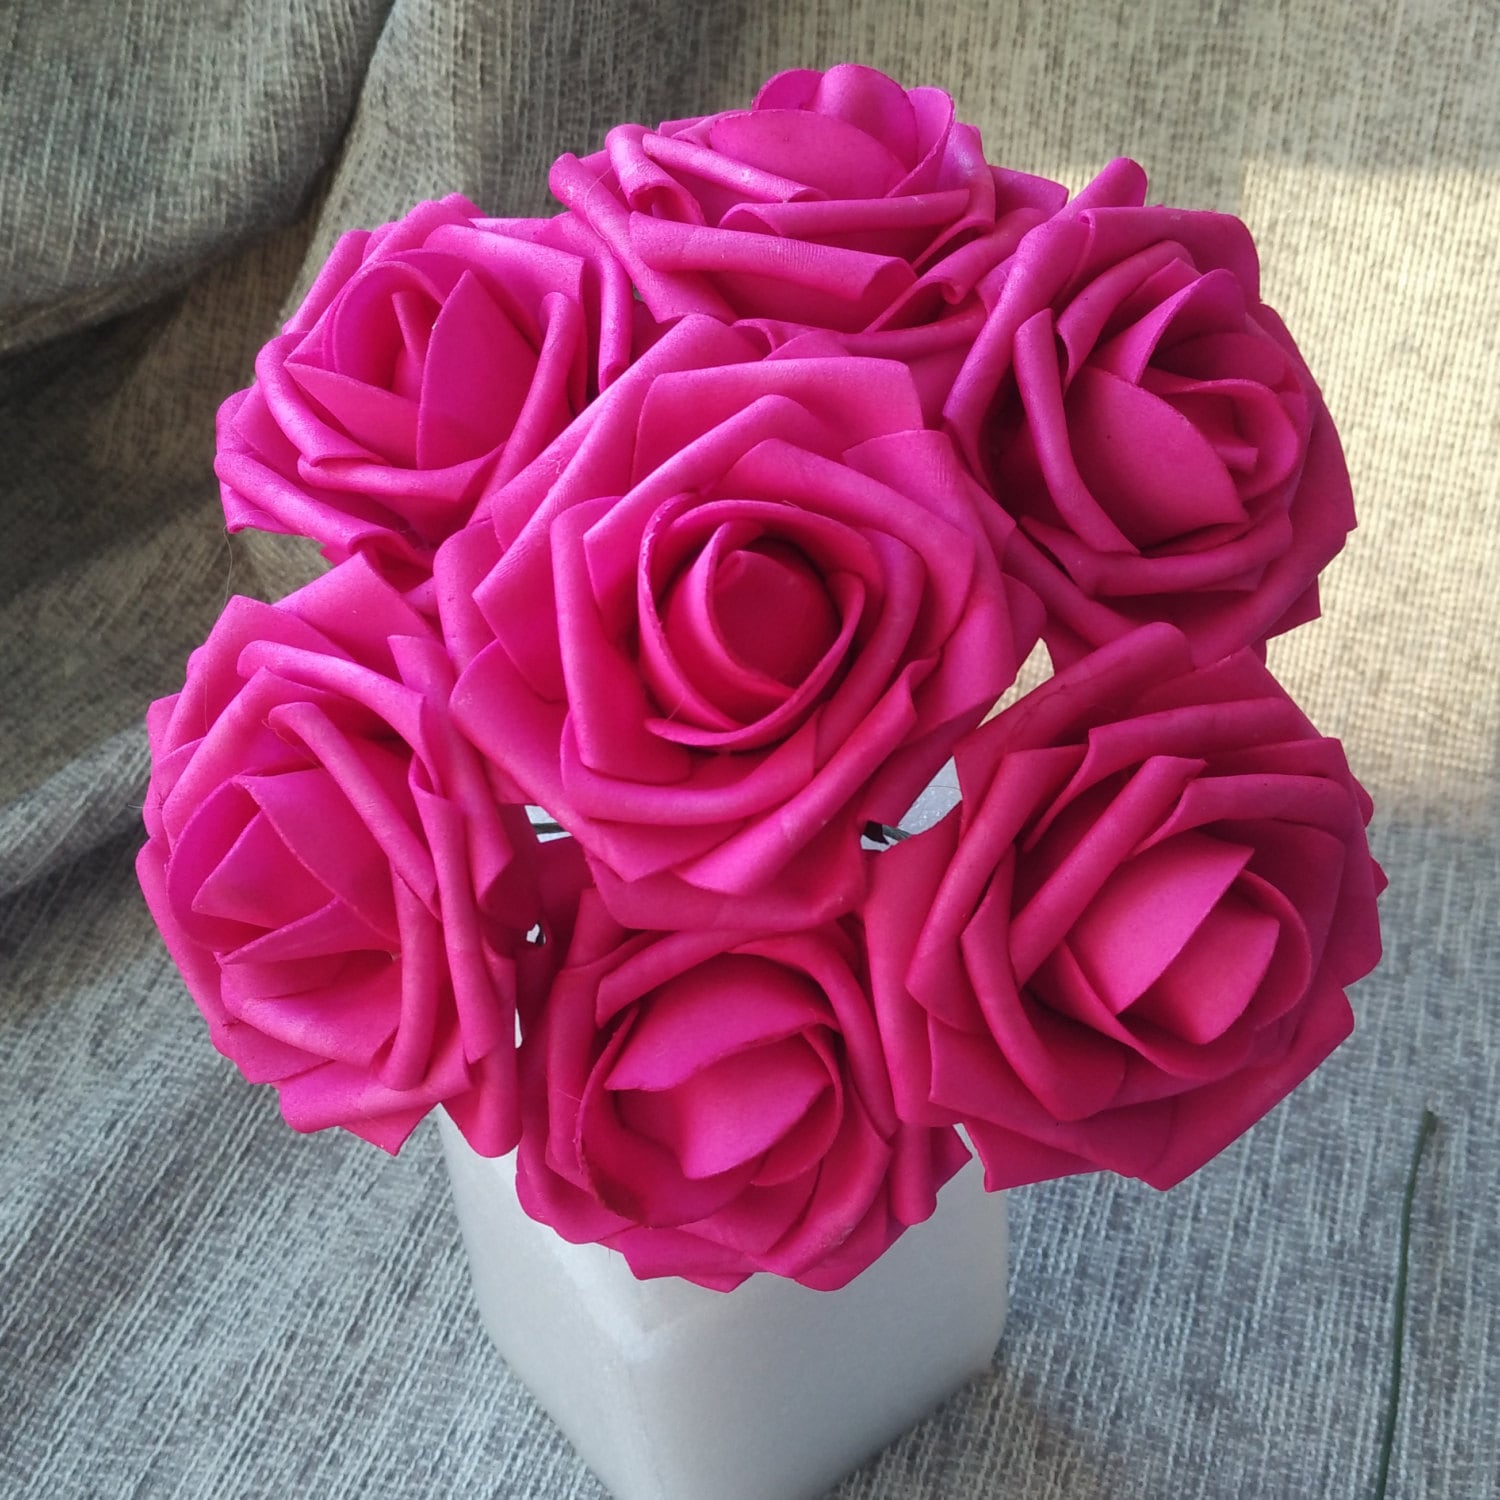 Wedding Bouquets Not Flowers: Hot Pink Wedding Flowers Dark Pink Fuschia Rose Foam